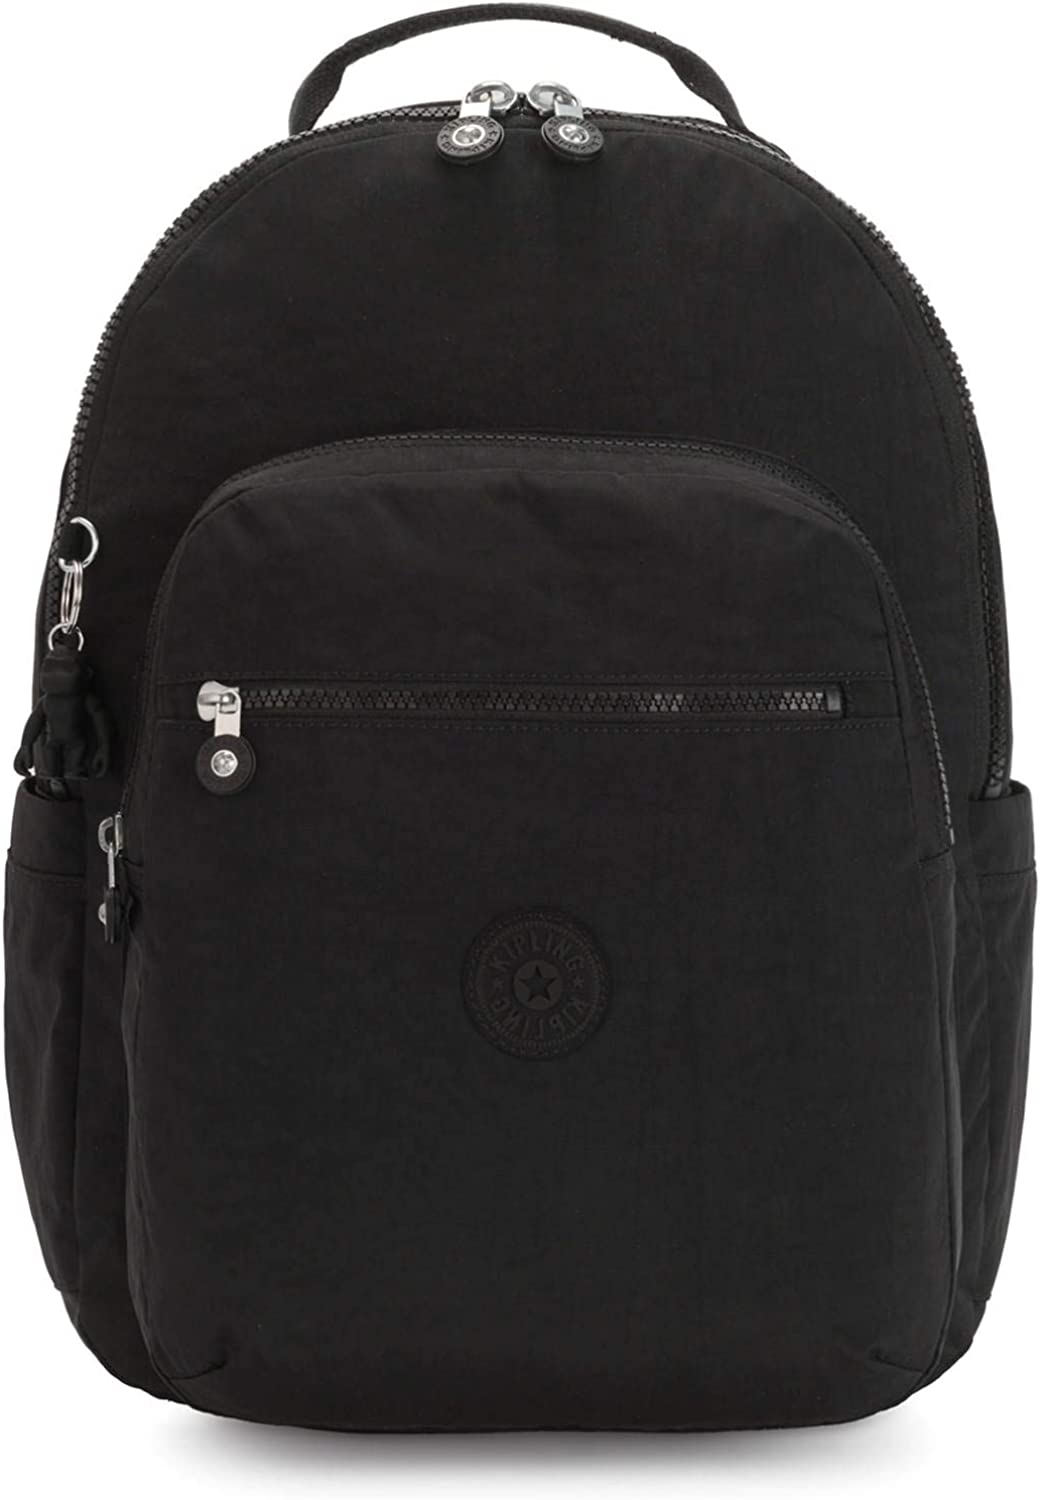 Kipling Women's Seoul Laptop Backpack